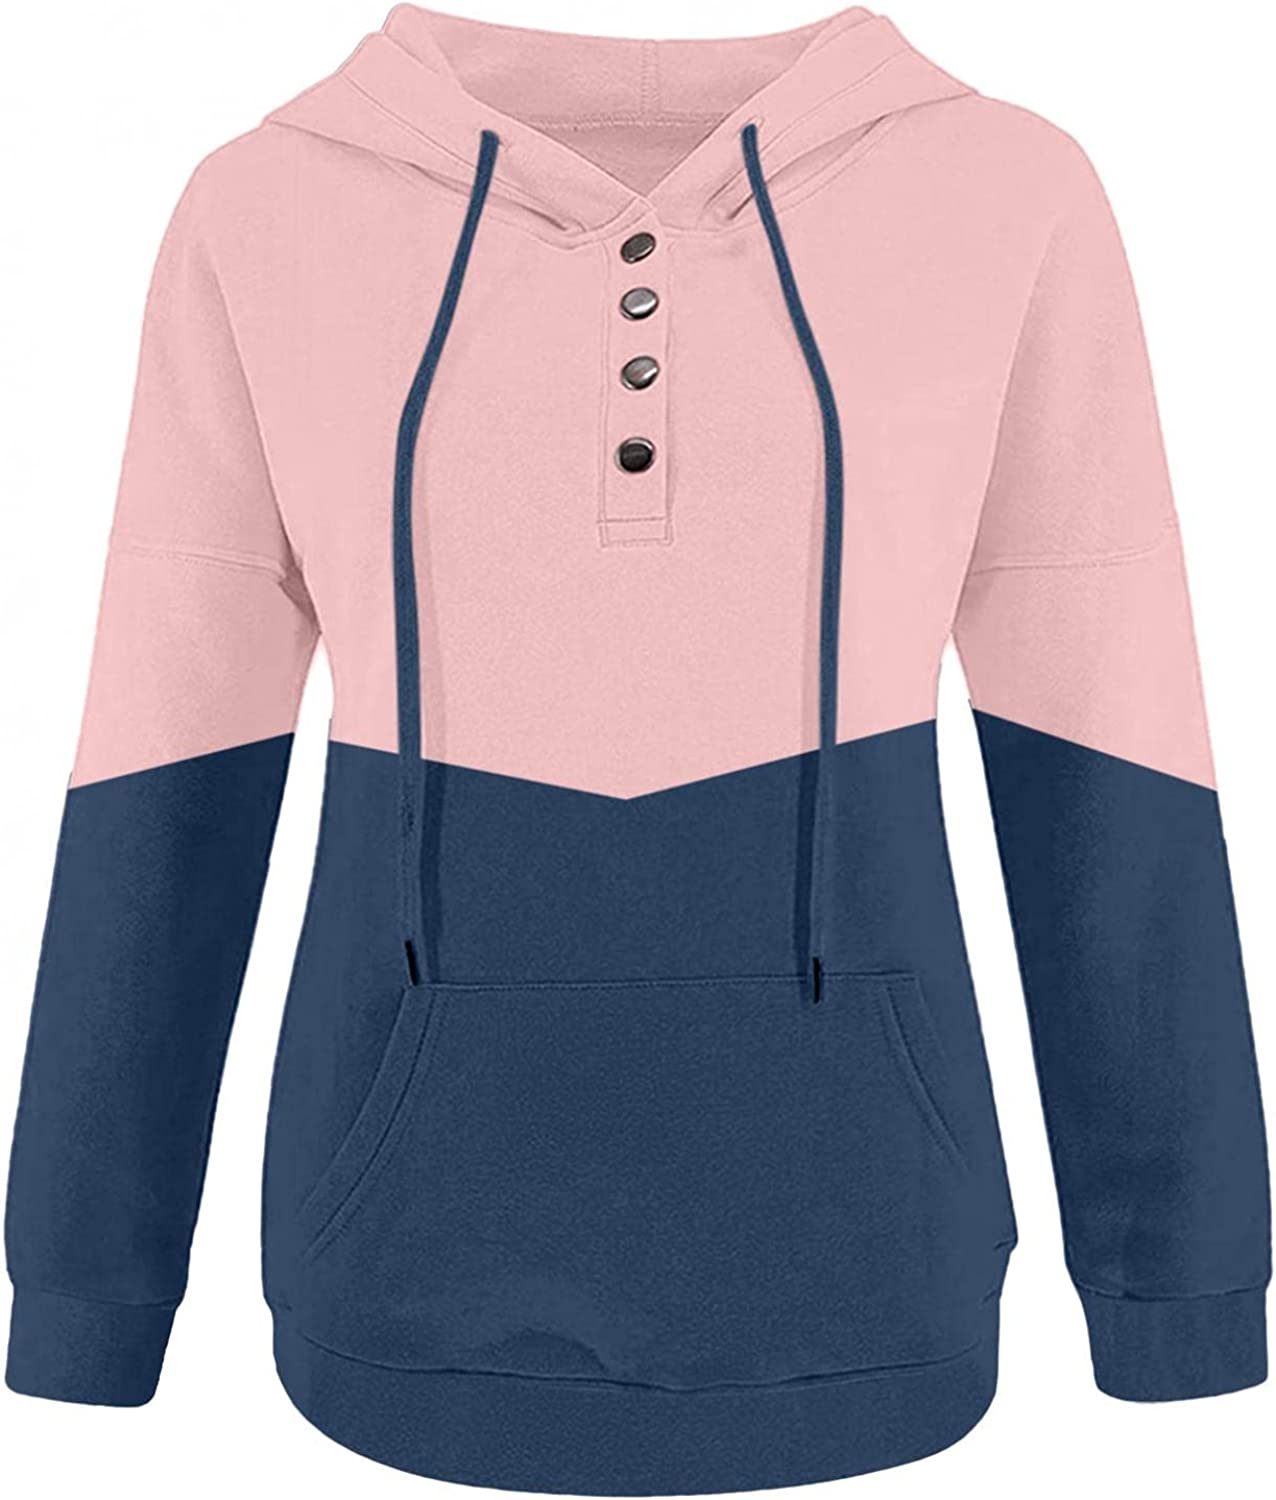 Kaitobe Hoodies for Women Plus Size Button Down Hooded Sweatshirts Splice Casual Long Sleeve Pullover Shirts with Pocket